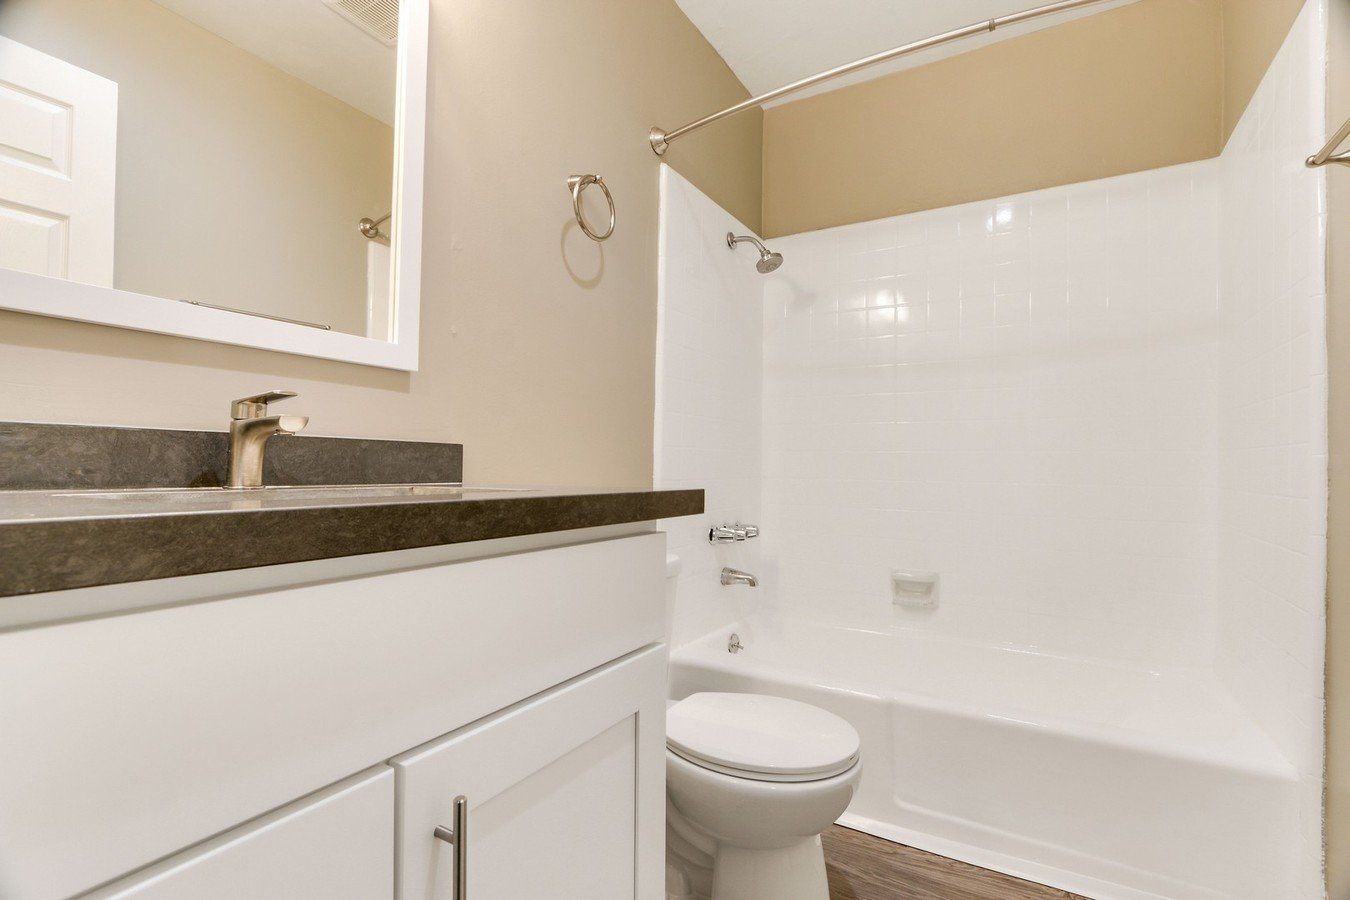 1 Bedroom 1 Bathroom Apartment for rent at Sepulveda West Apartments in Los Angeles, CA